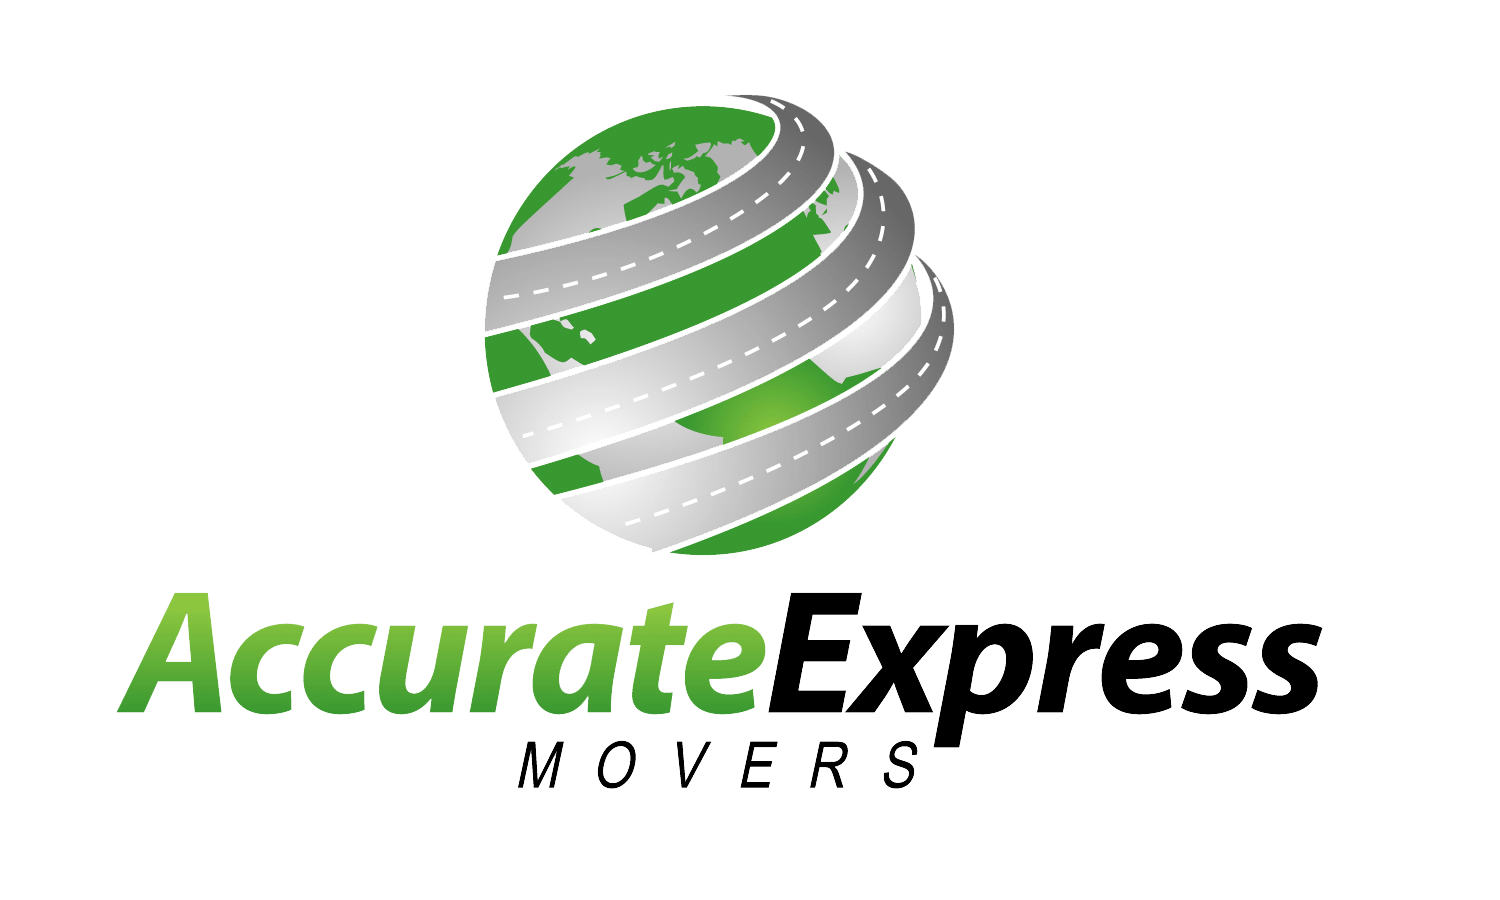 Accurate Express Movers Logo